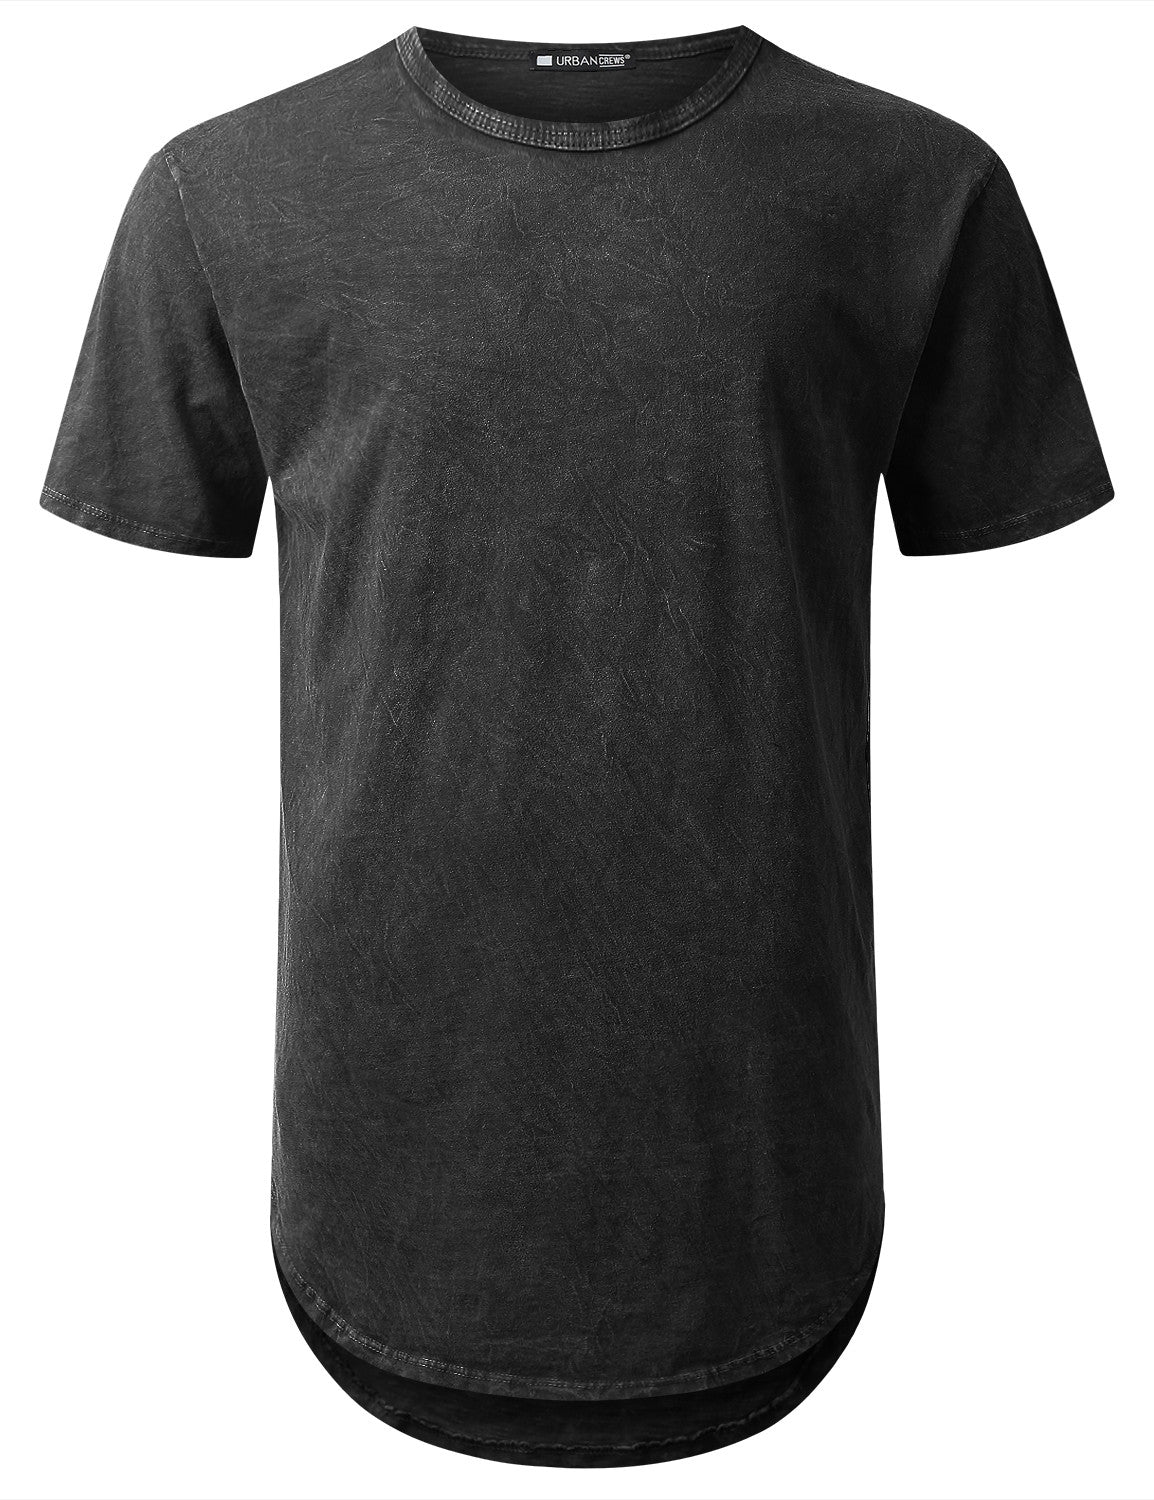 BLACK Cotton Dyed Longline T-shirt - URBANCREWS